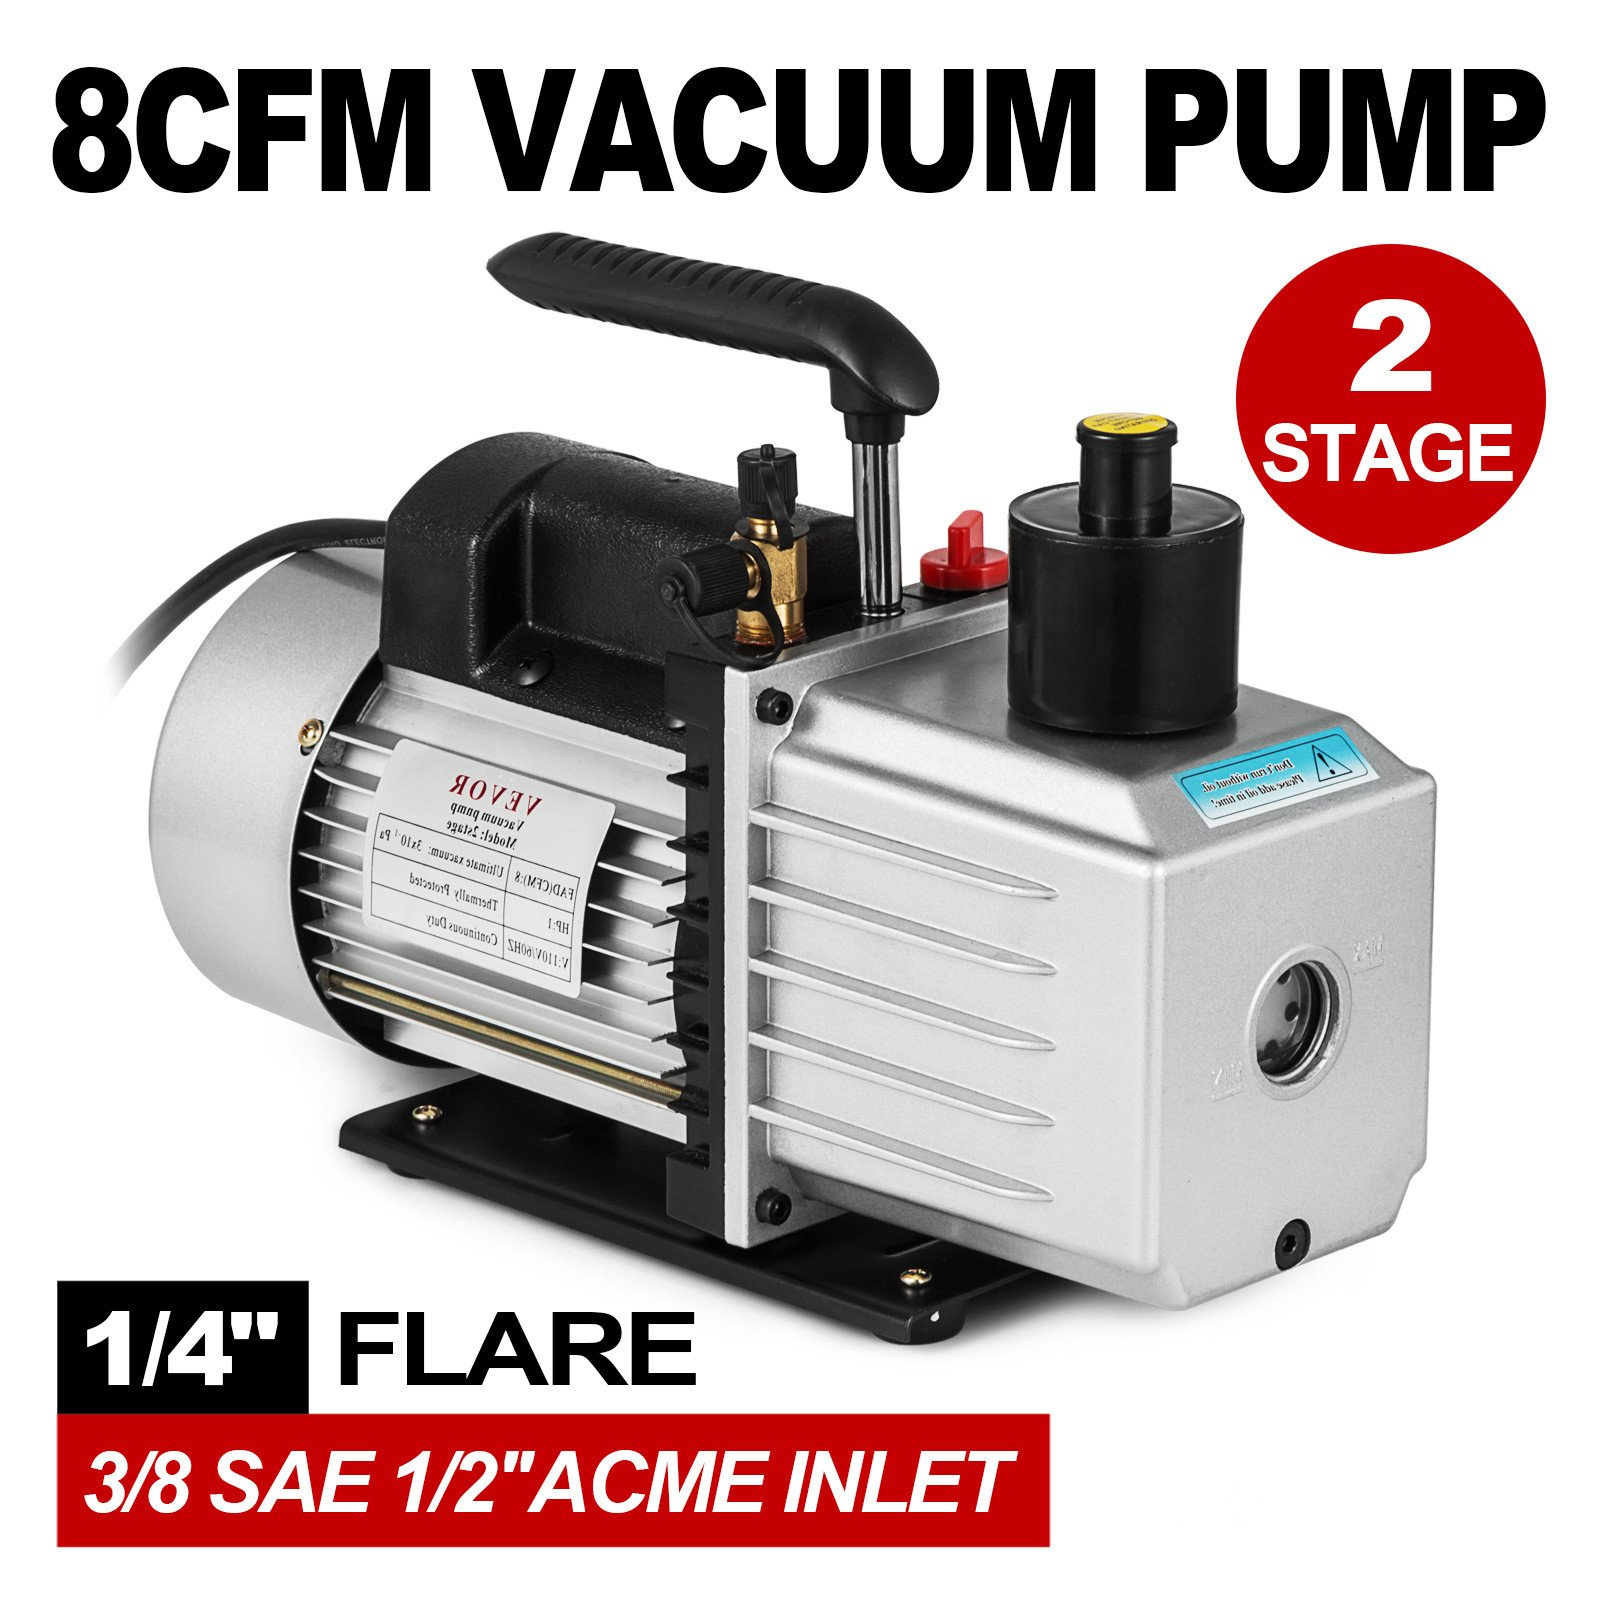 VEVOR Vacuum Pump 8CFM 1HP Two Stage HVAC Rotary Vane Vacuum Pump Wine Degassing Milking Medical Food Processing Air Conditioning Auto AC Refrigerant Vacuum Pump (2-Stage, 8CFM) by VEVOR (Image #2)